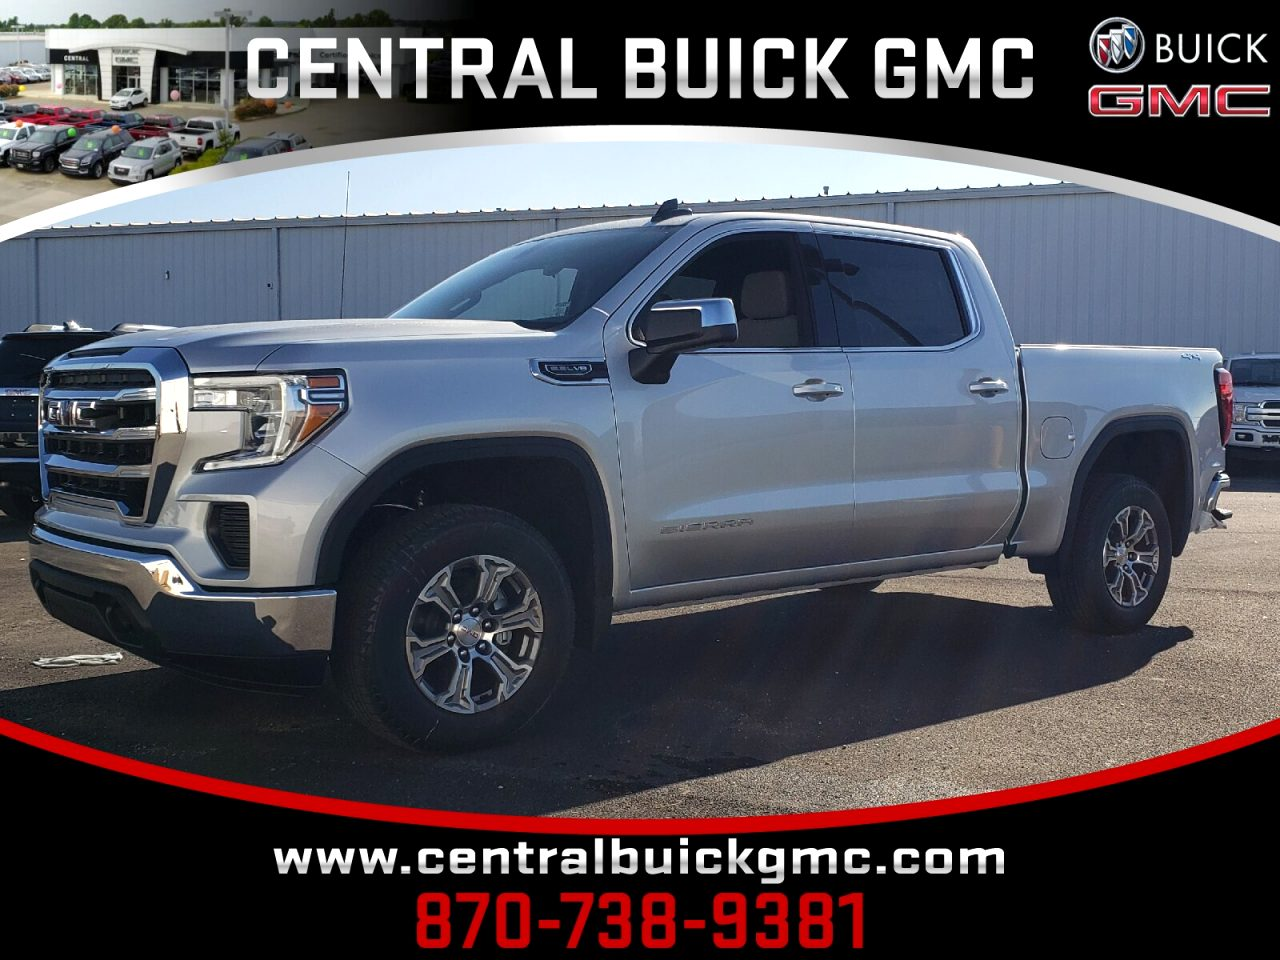 2021 GMC x31 for sale Release Date